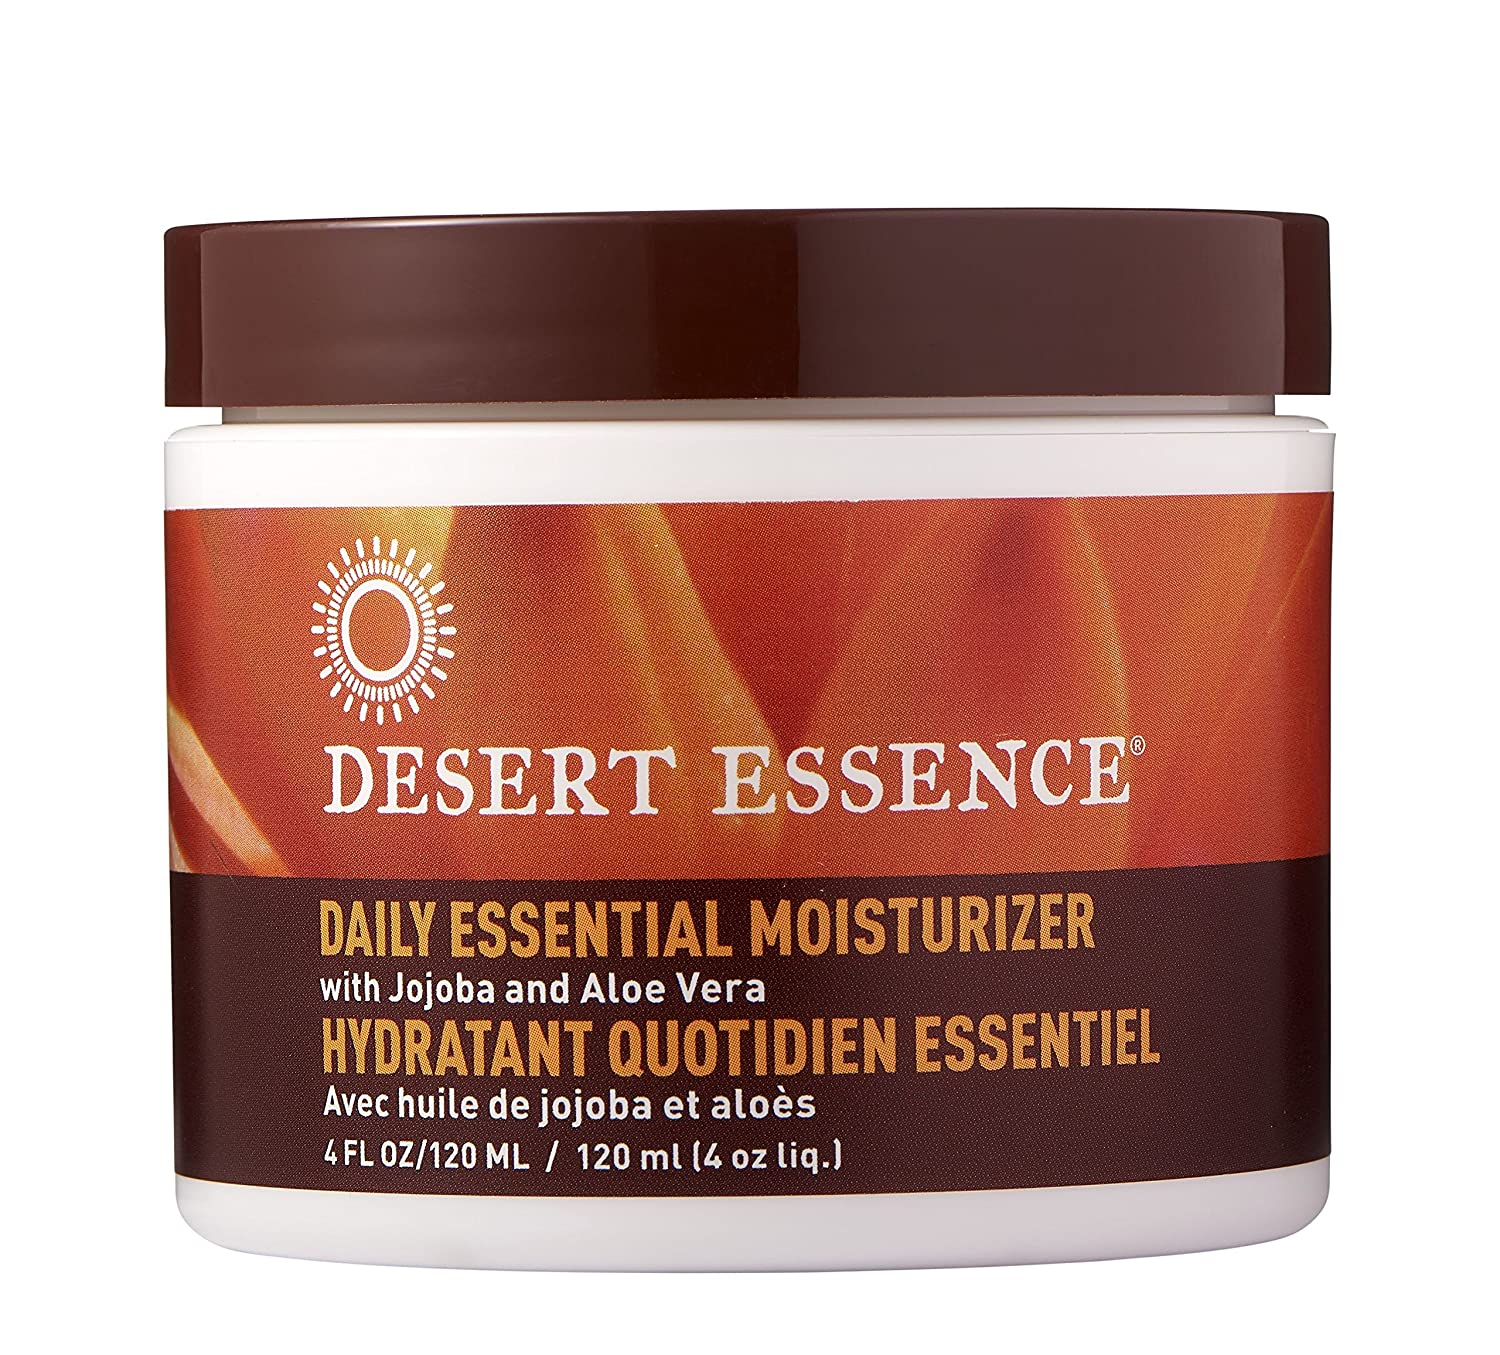 Revitalizing Oils Moisturizer - 2 oz. by Desert Essence (pack of 1) b00chh9ick: yonka age correction advanced opt. creme, 40 ml